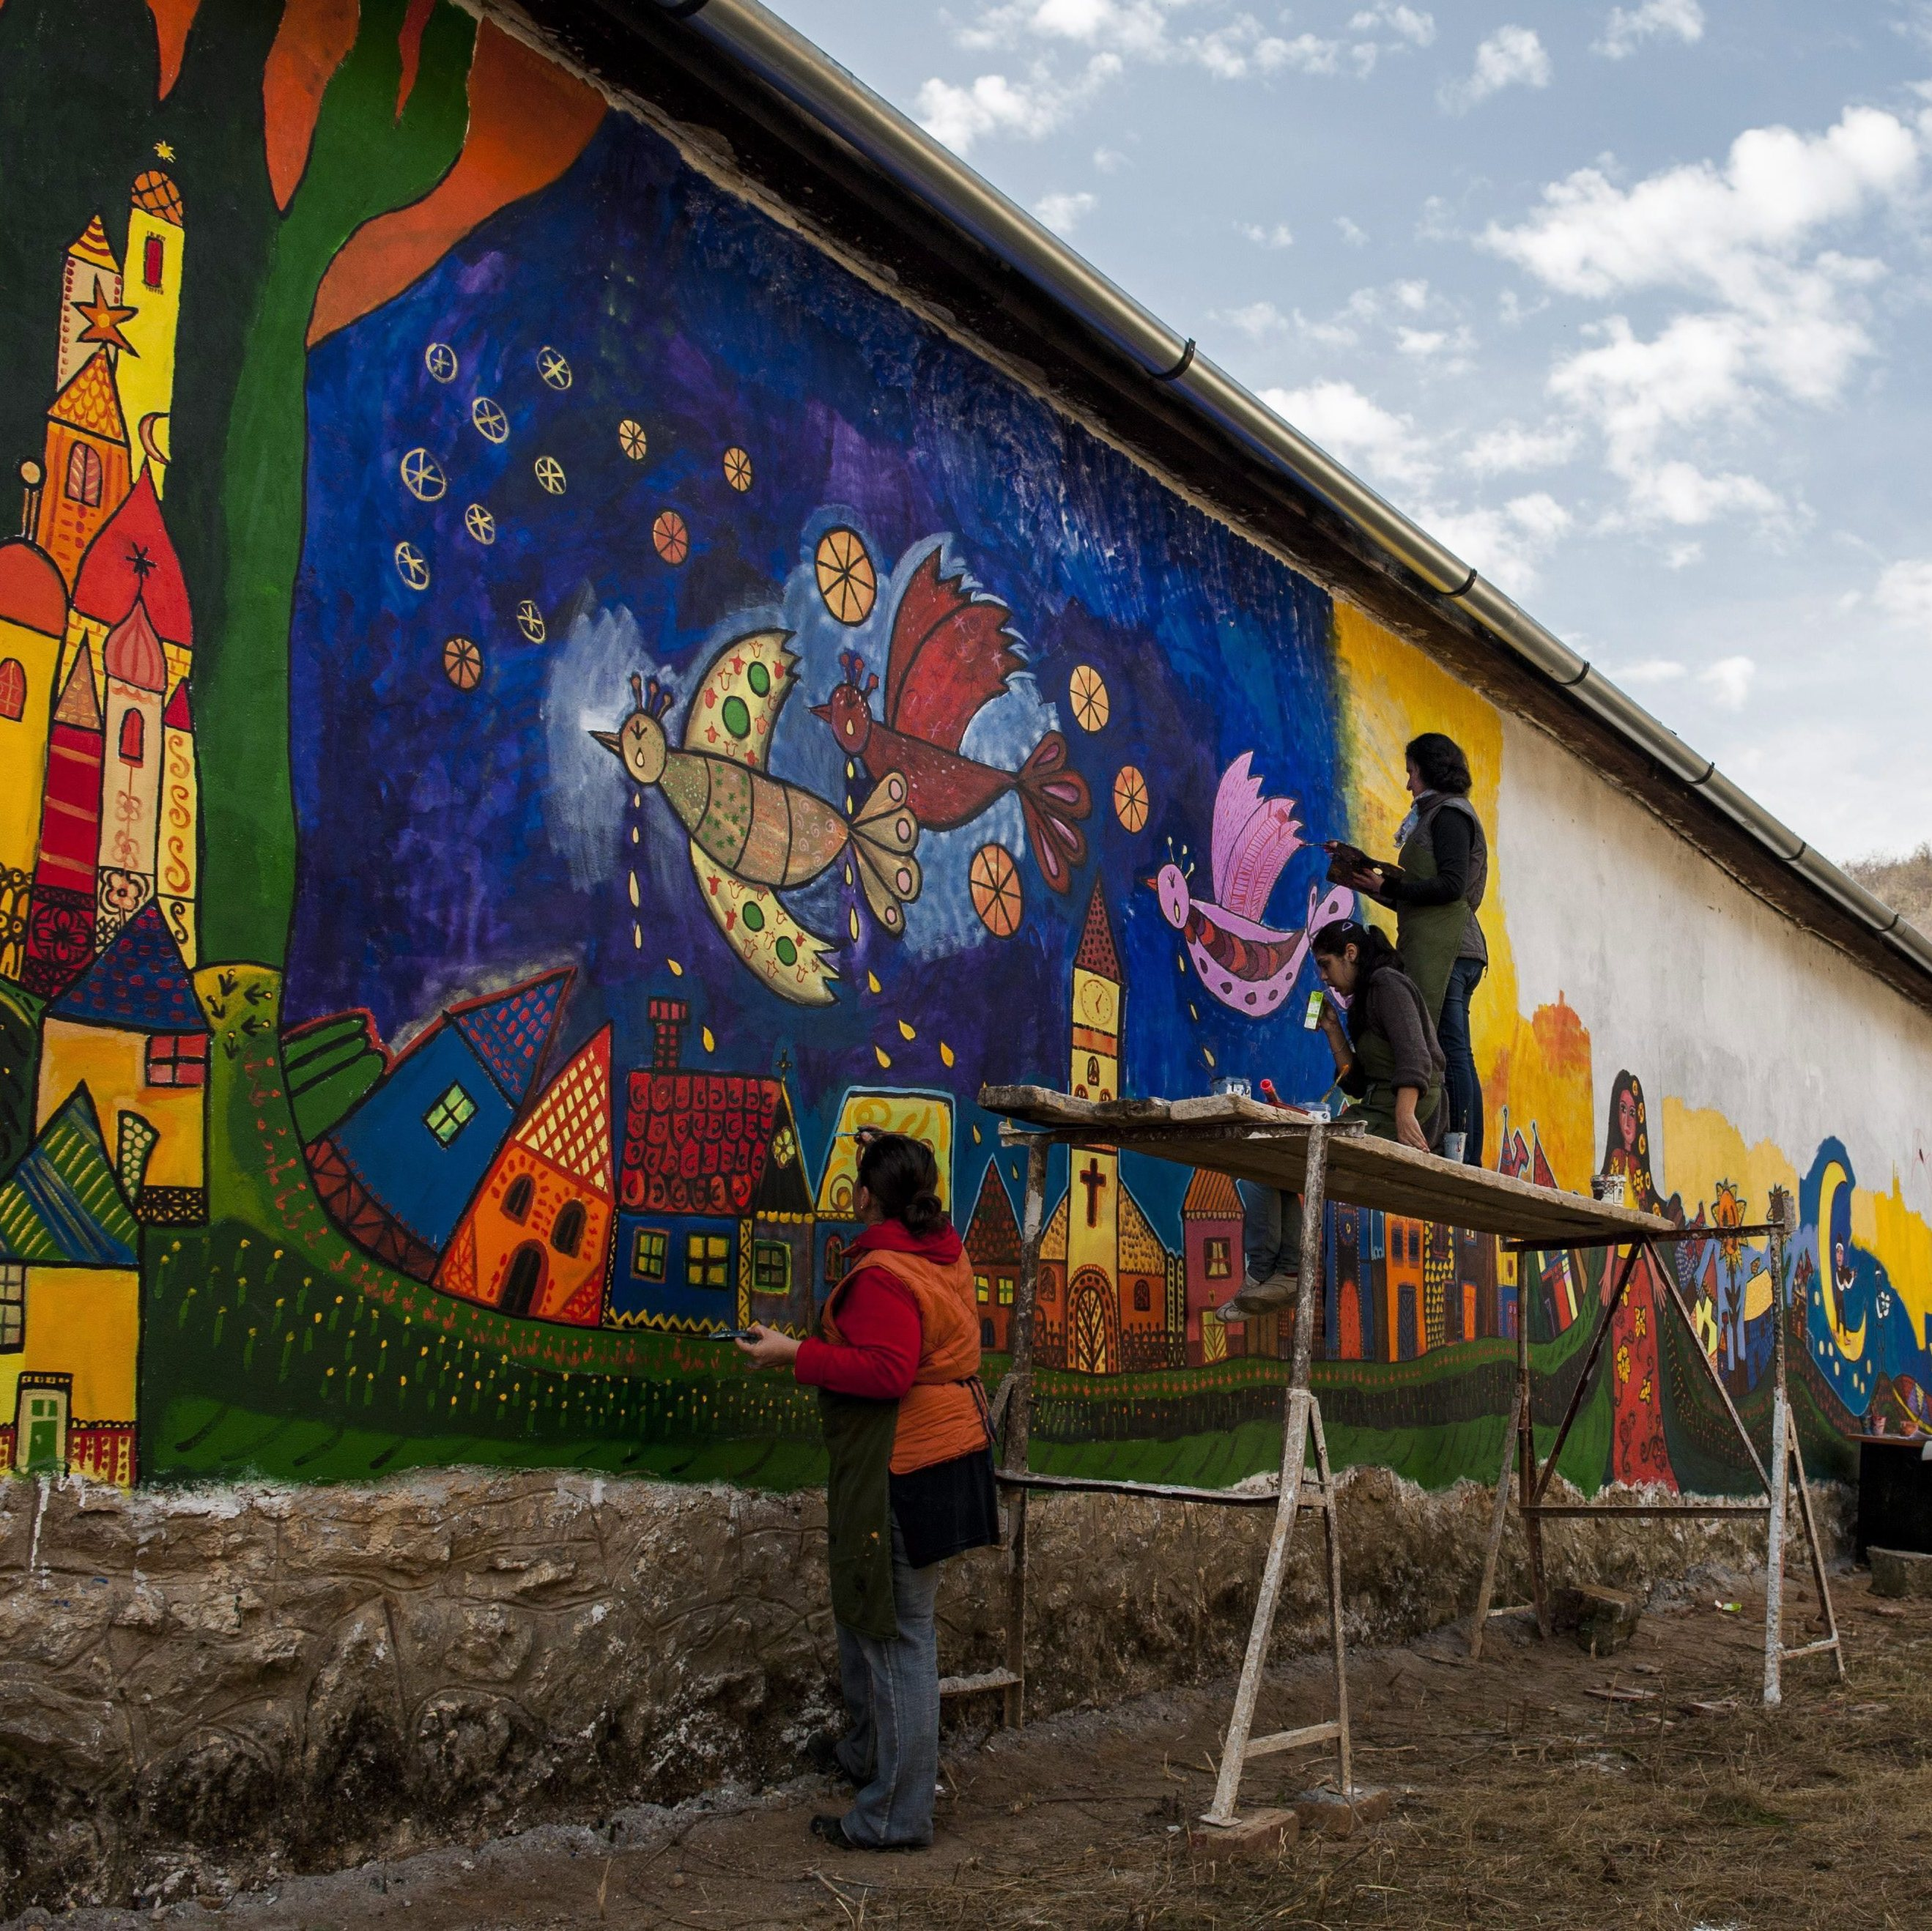 In the small Roma village of Bodvalenke, building walls are covered in frescoes that represent Roma culture. It is meant to encourage tourism and integration.